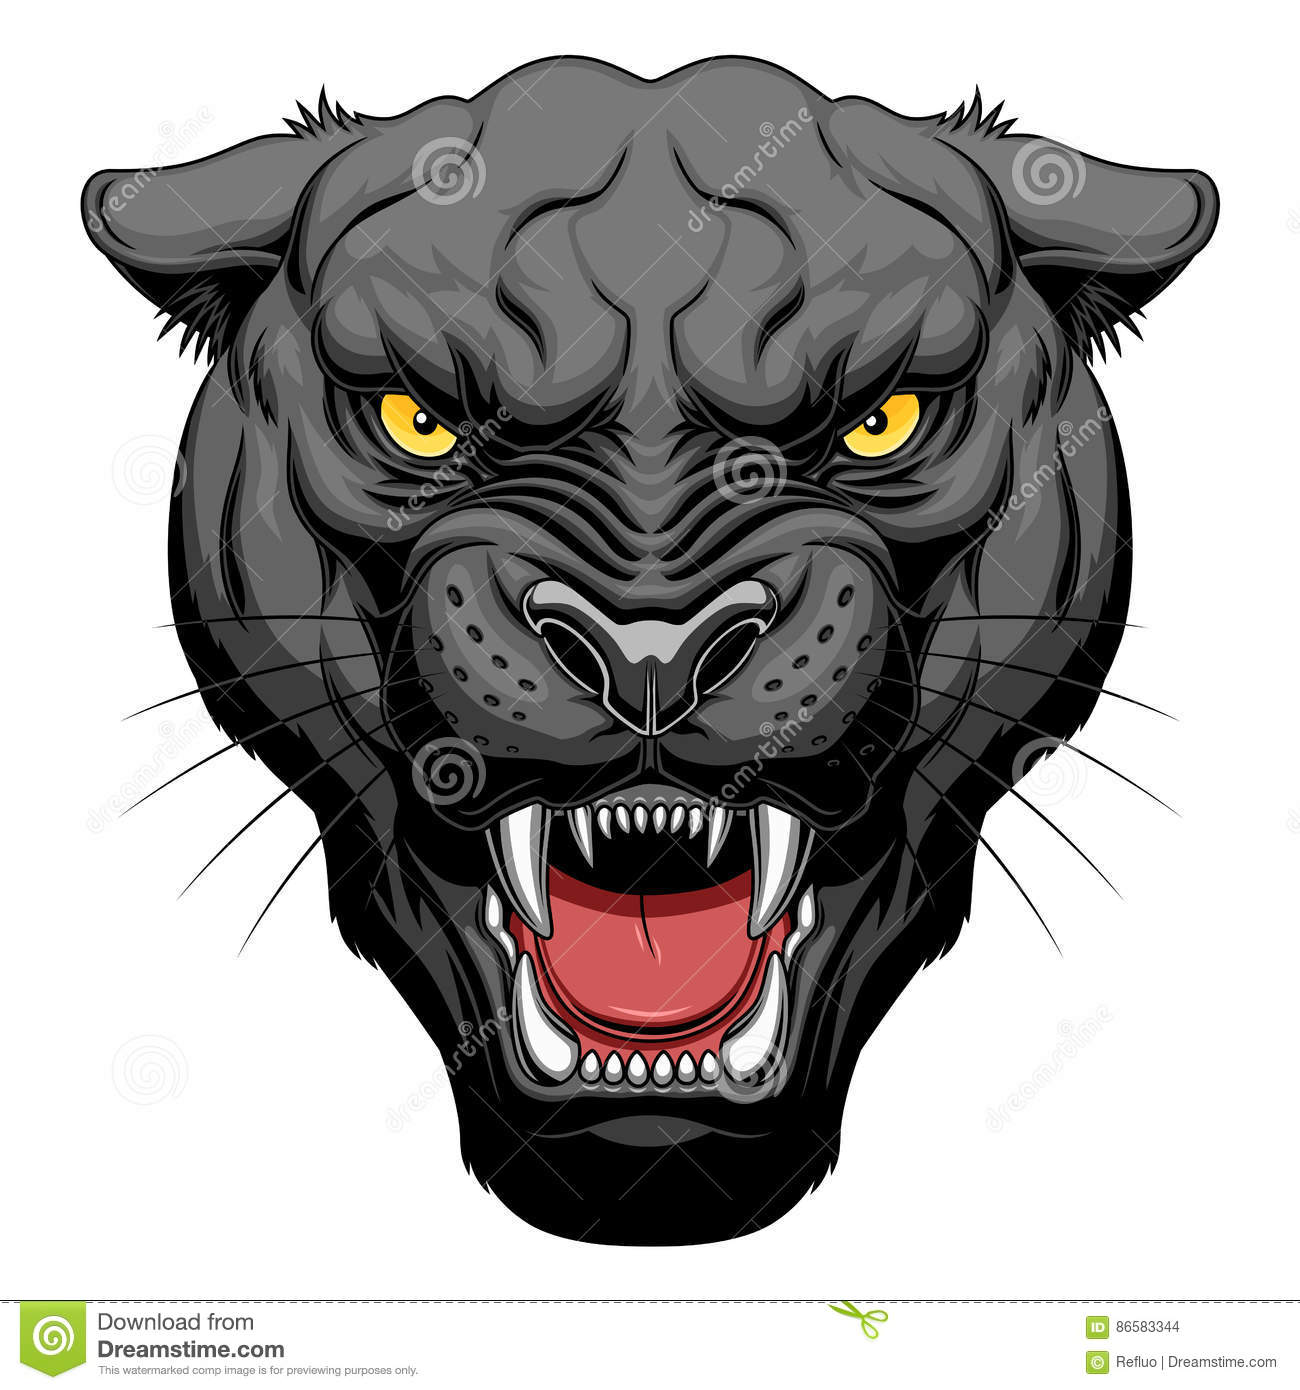 Black Jaguar Growl: Growling Panther Face Stock Vector. Illustration Of Scary